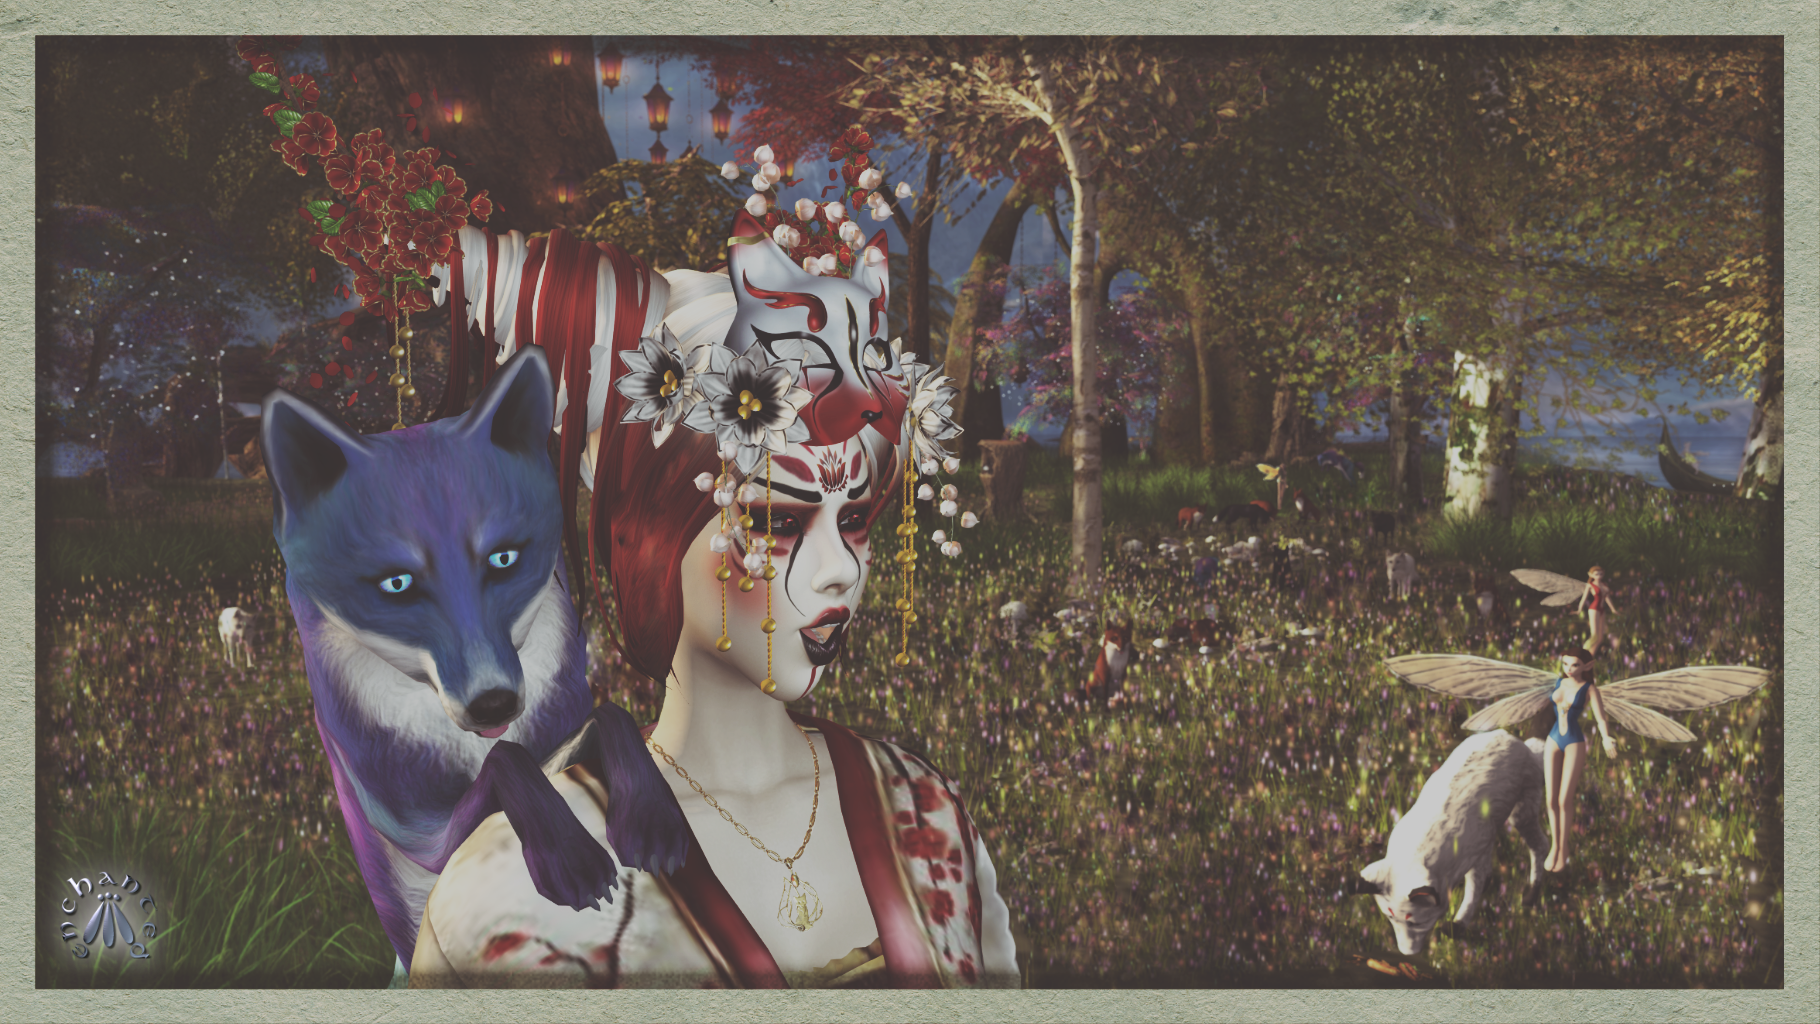 enchantment kitsune 3 edit - 13 BLOG